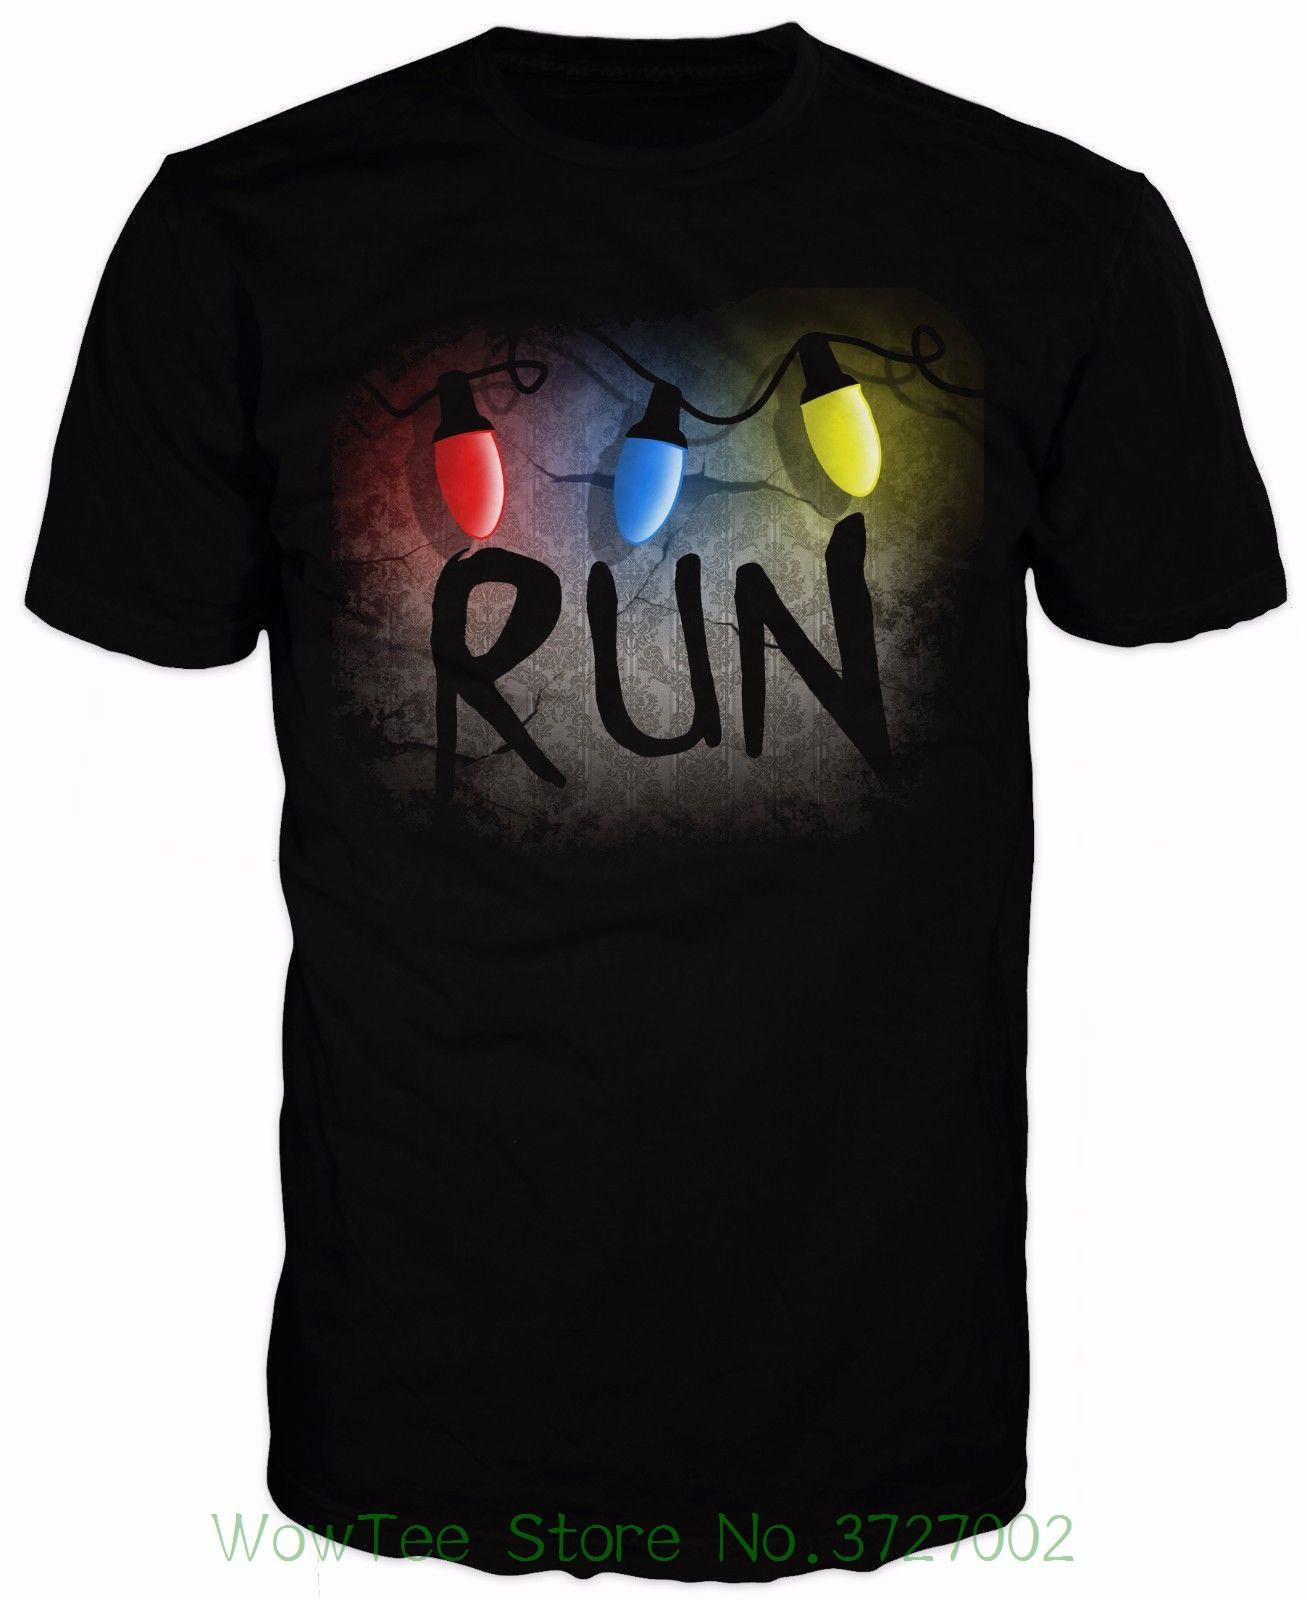 05c9647e6b0 Runner T-shirt Inspired By Stranger Things 2018 New Pure Cotton Short  Sleeves Hip Hop Fashion Mens T-shirt Online with  32.14 Piece on Wowteestore s  Store ...